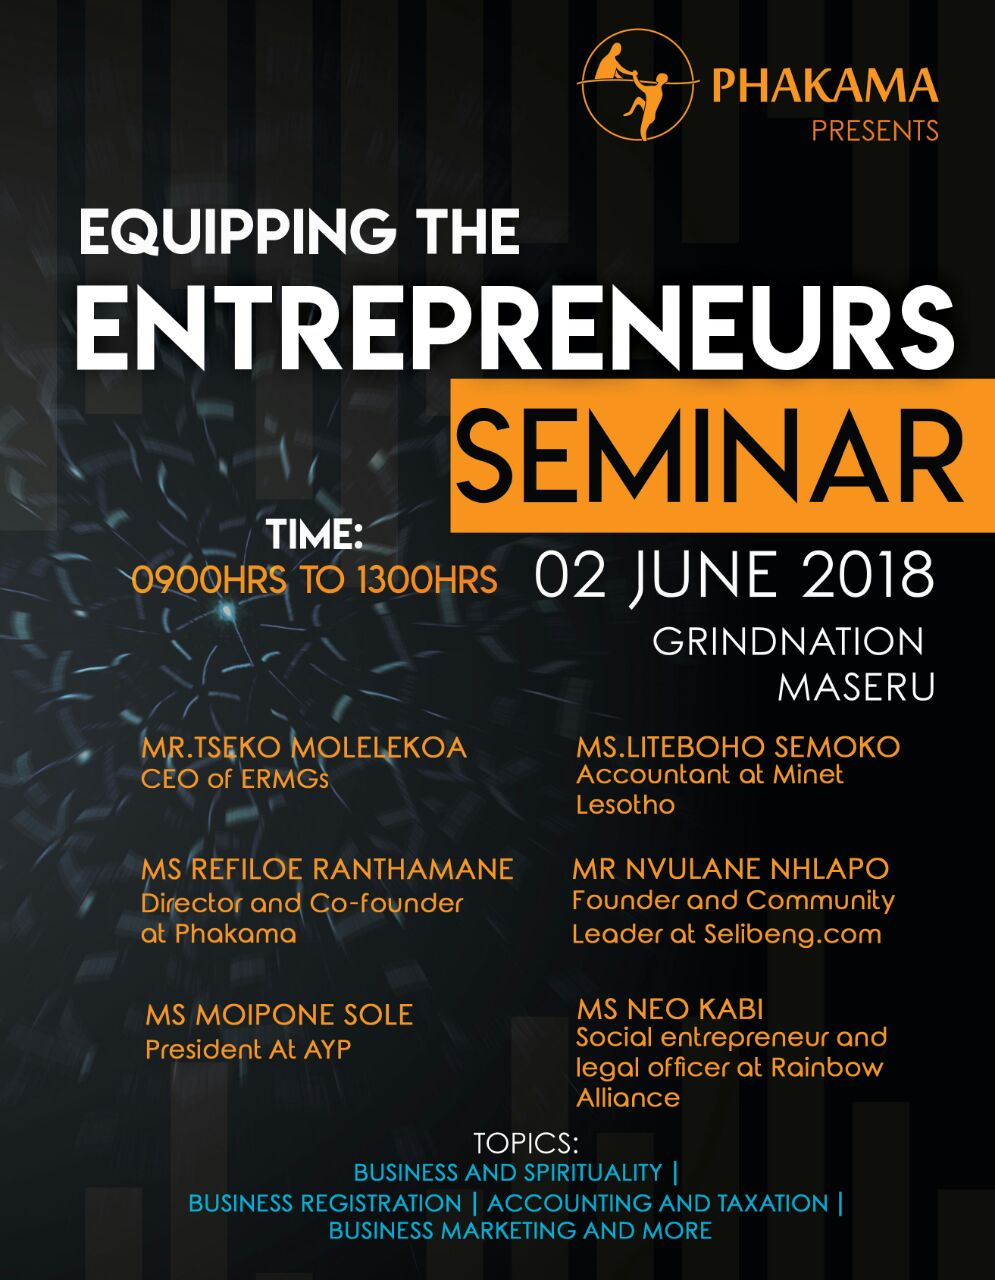 Equipping the Entrepreneurs Seminar